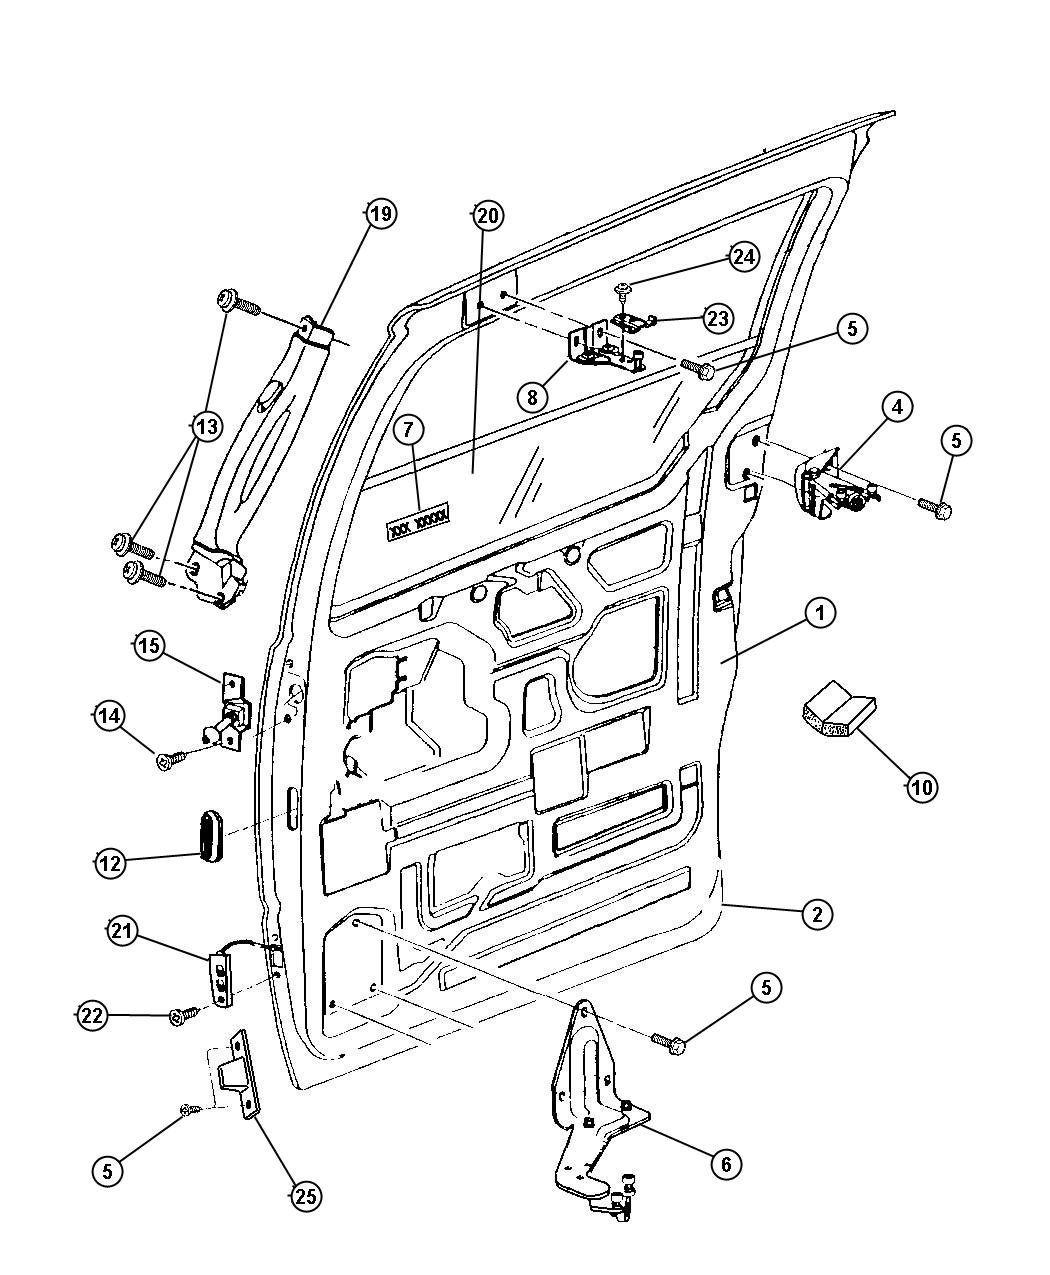 Honda Accord Door Lock Diagram Free Engine Image For User Manual Download